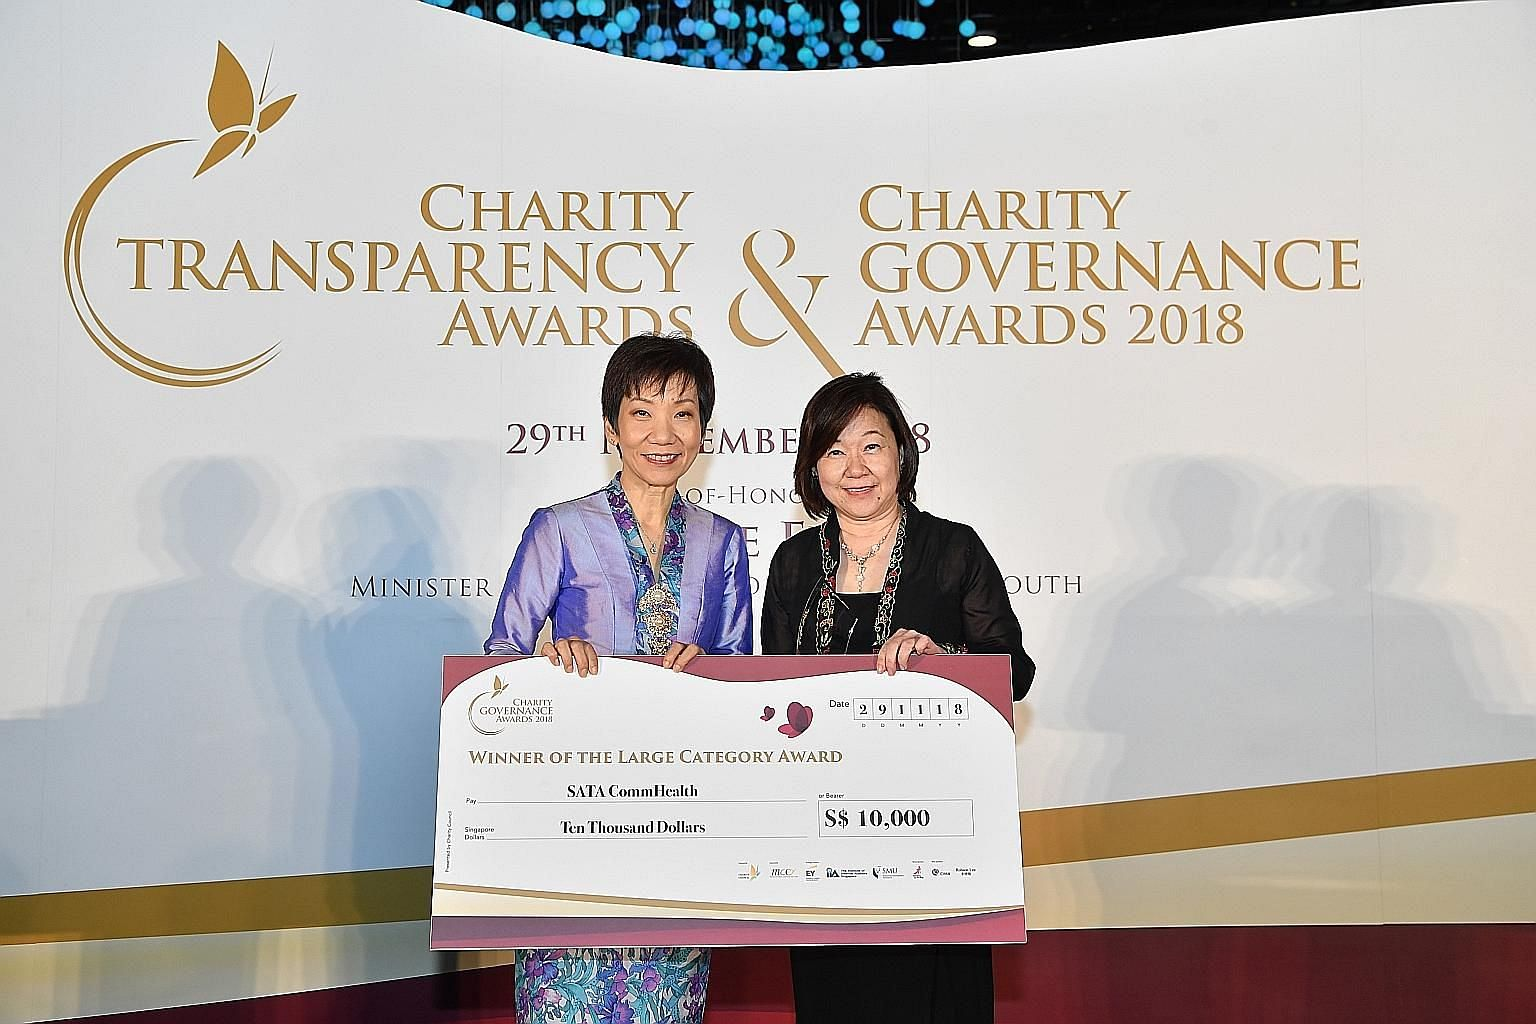 Minister for Culture, Community and Youth Grace Fu (far left) presenting the Charity Governance Award for charities in the large category to Ms Theresa Goh, chairman of Sata CommHealth, at yesterday's award ceremony.